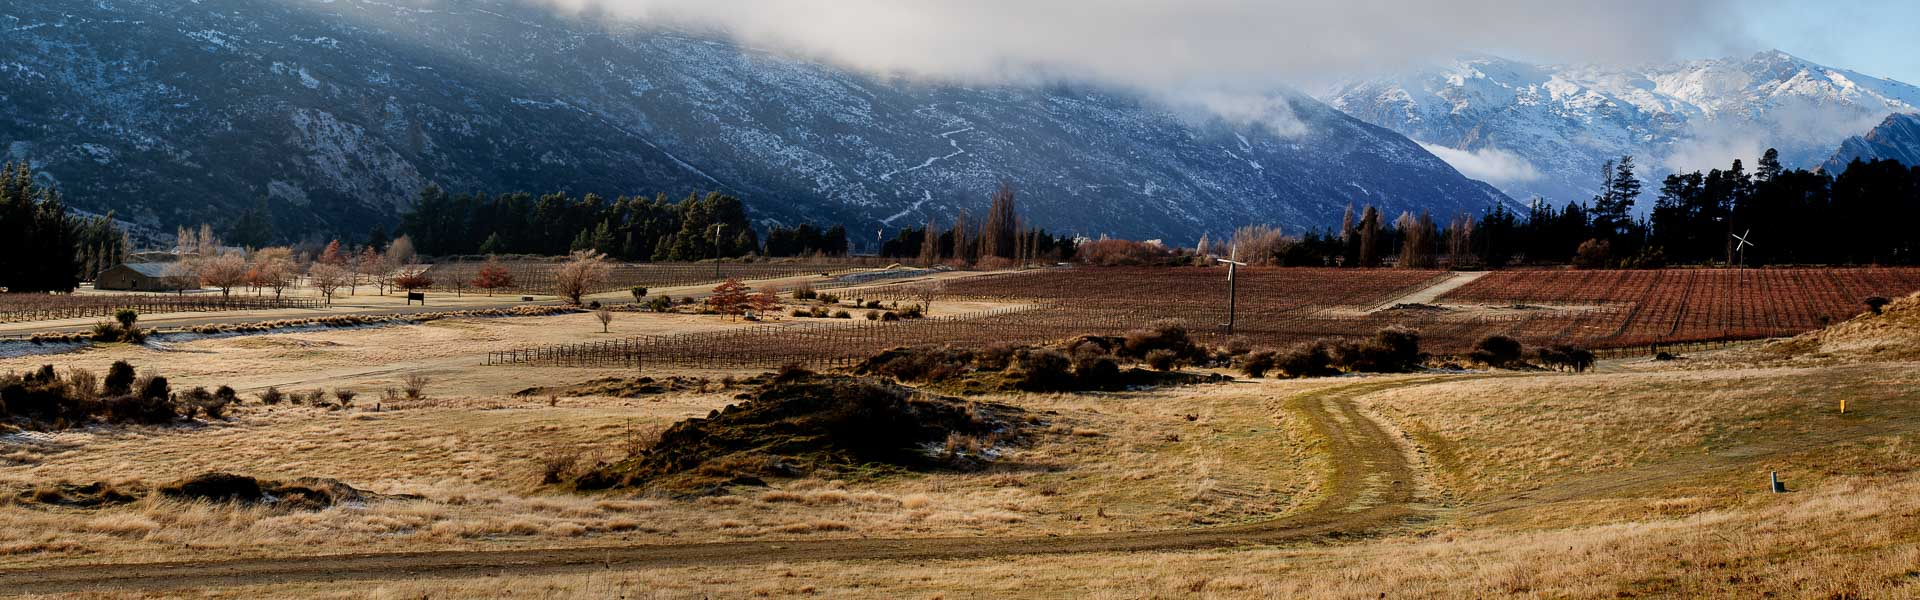 Gibbston Vista - Central Otago